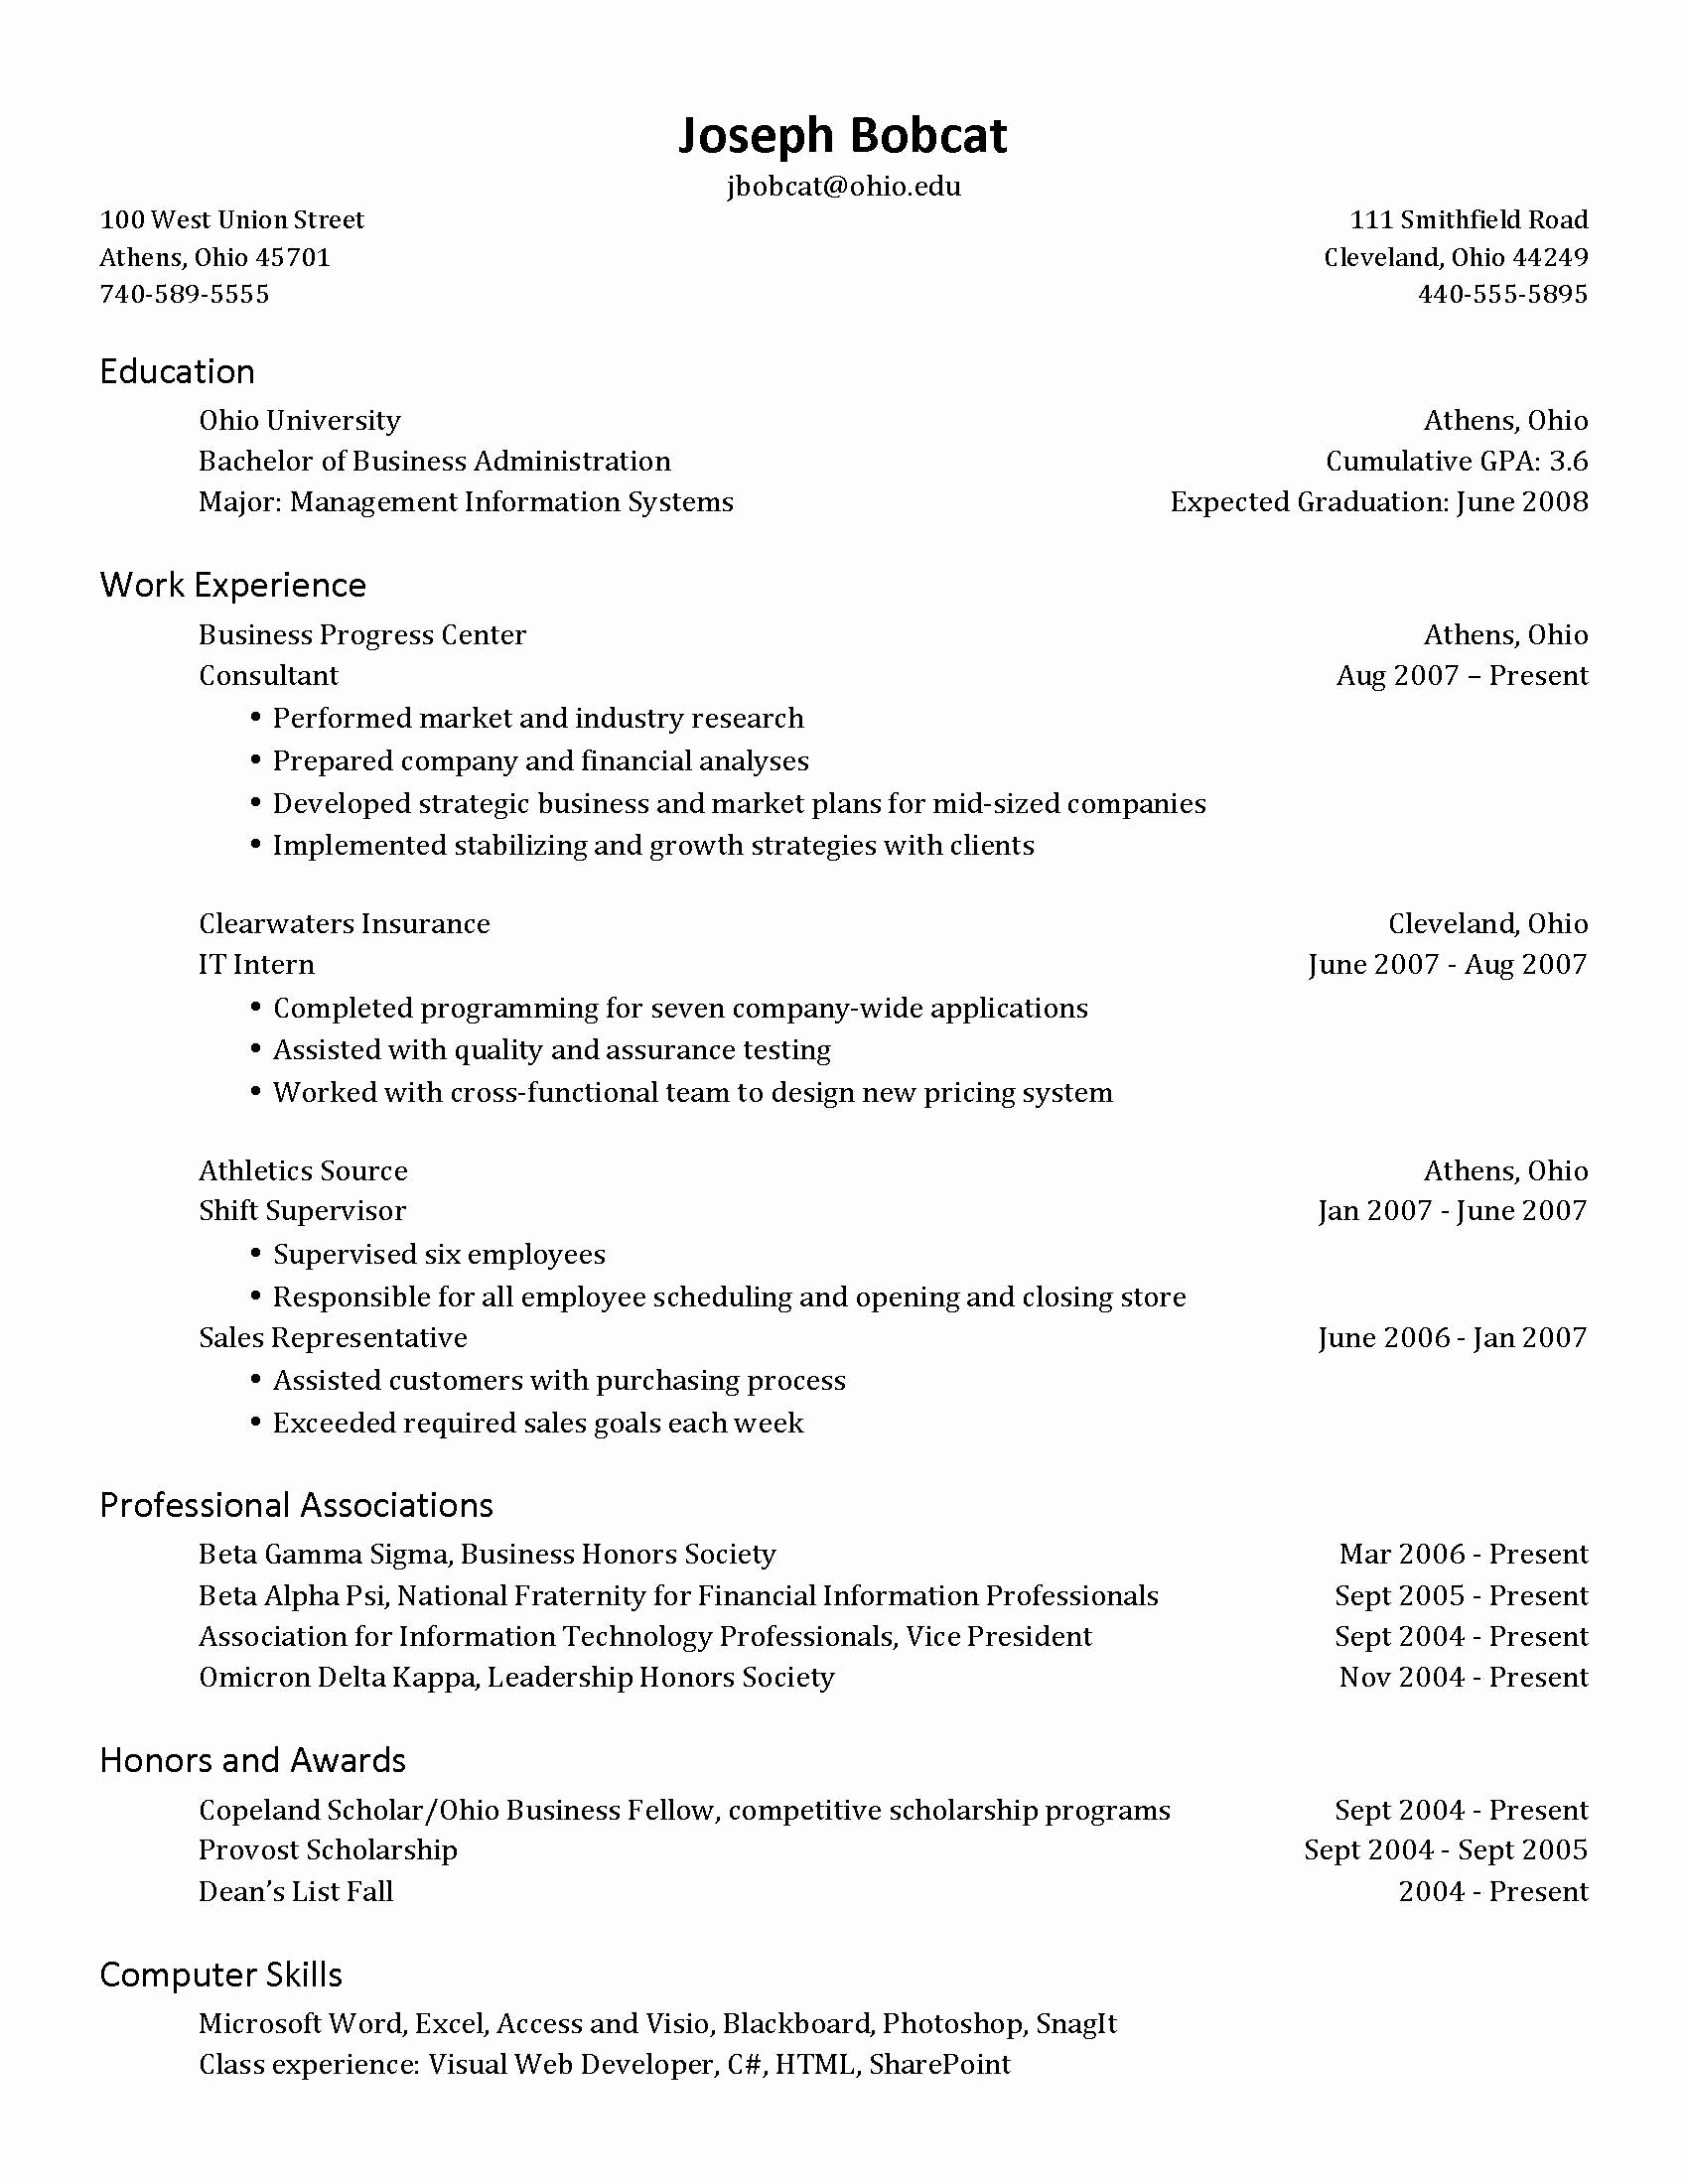 Projected Graduation Date On Resume Lovely Establishing Credentials Networking and Placement